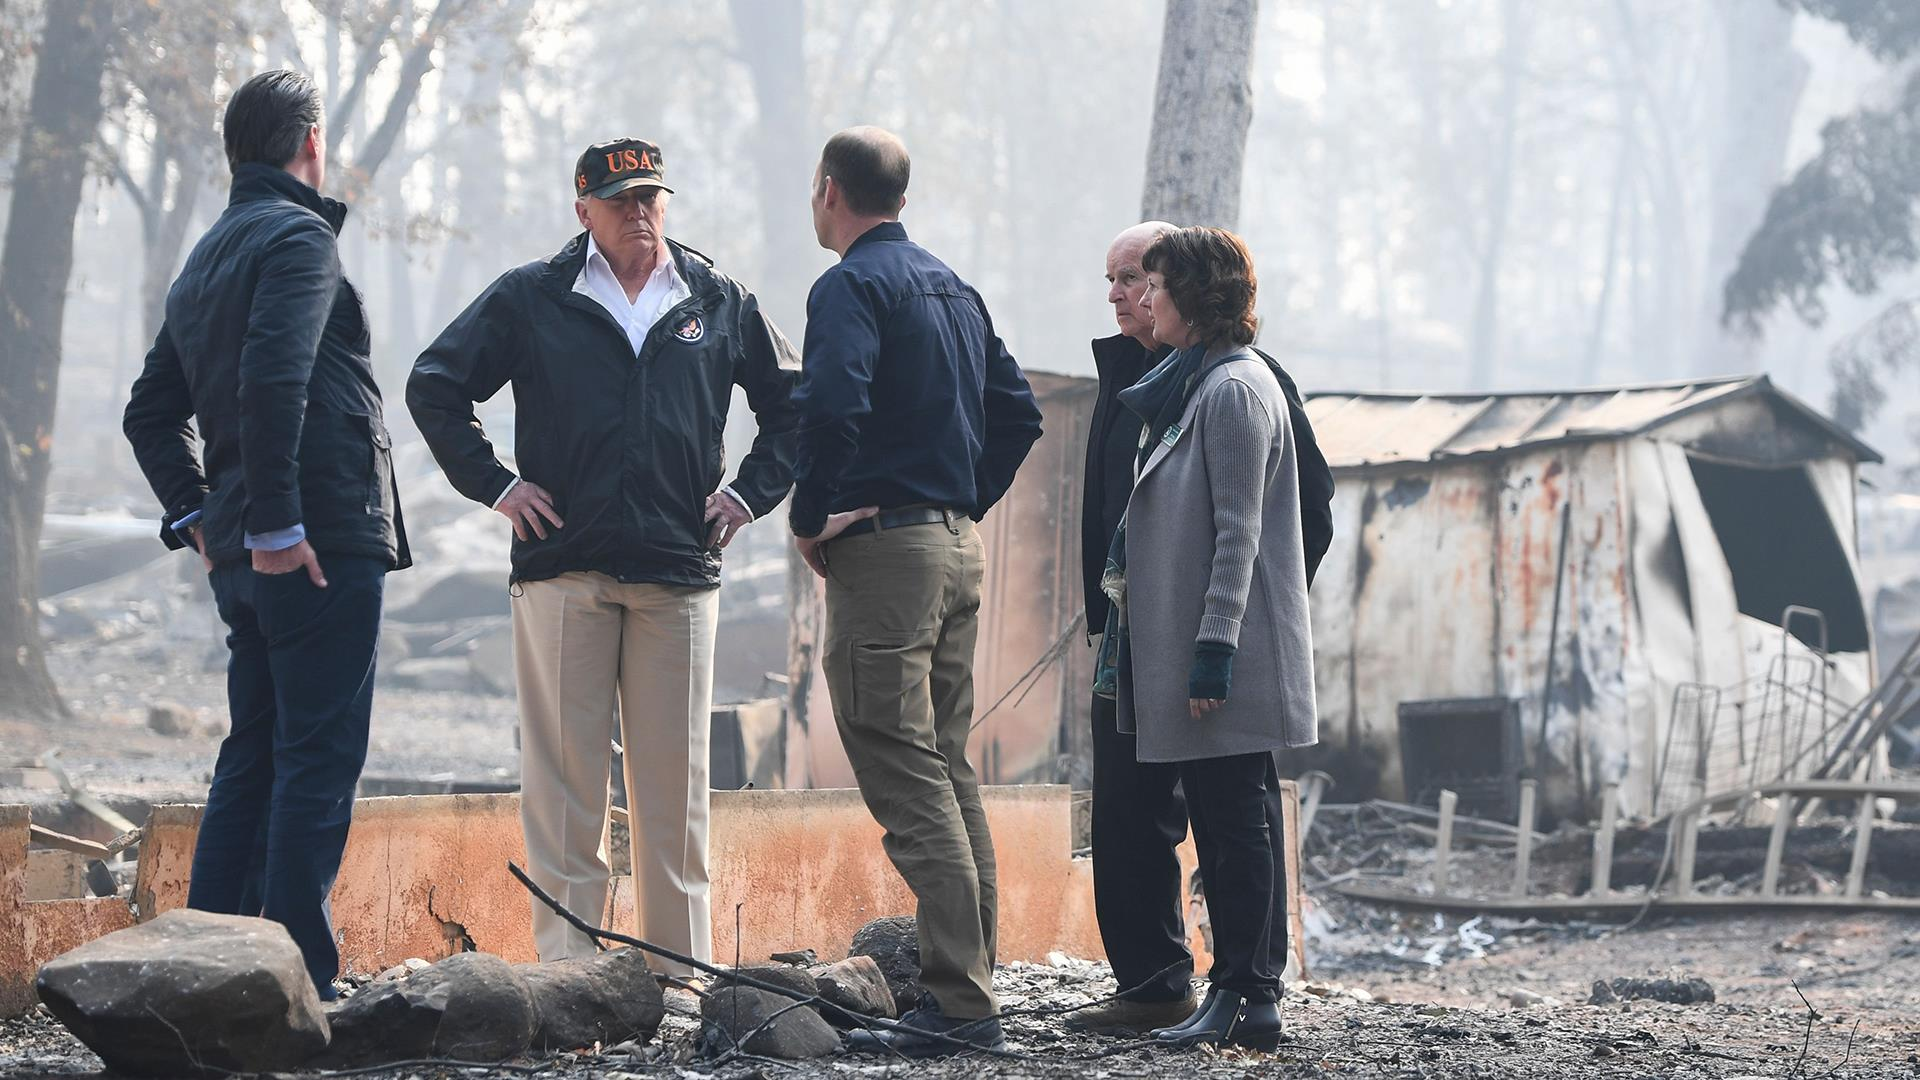 Trump visits site of California's most deadly fire, pledges federal help